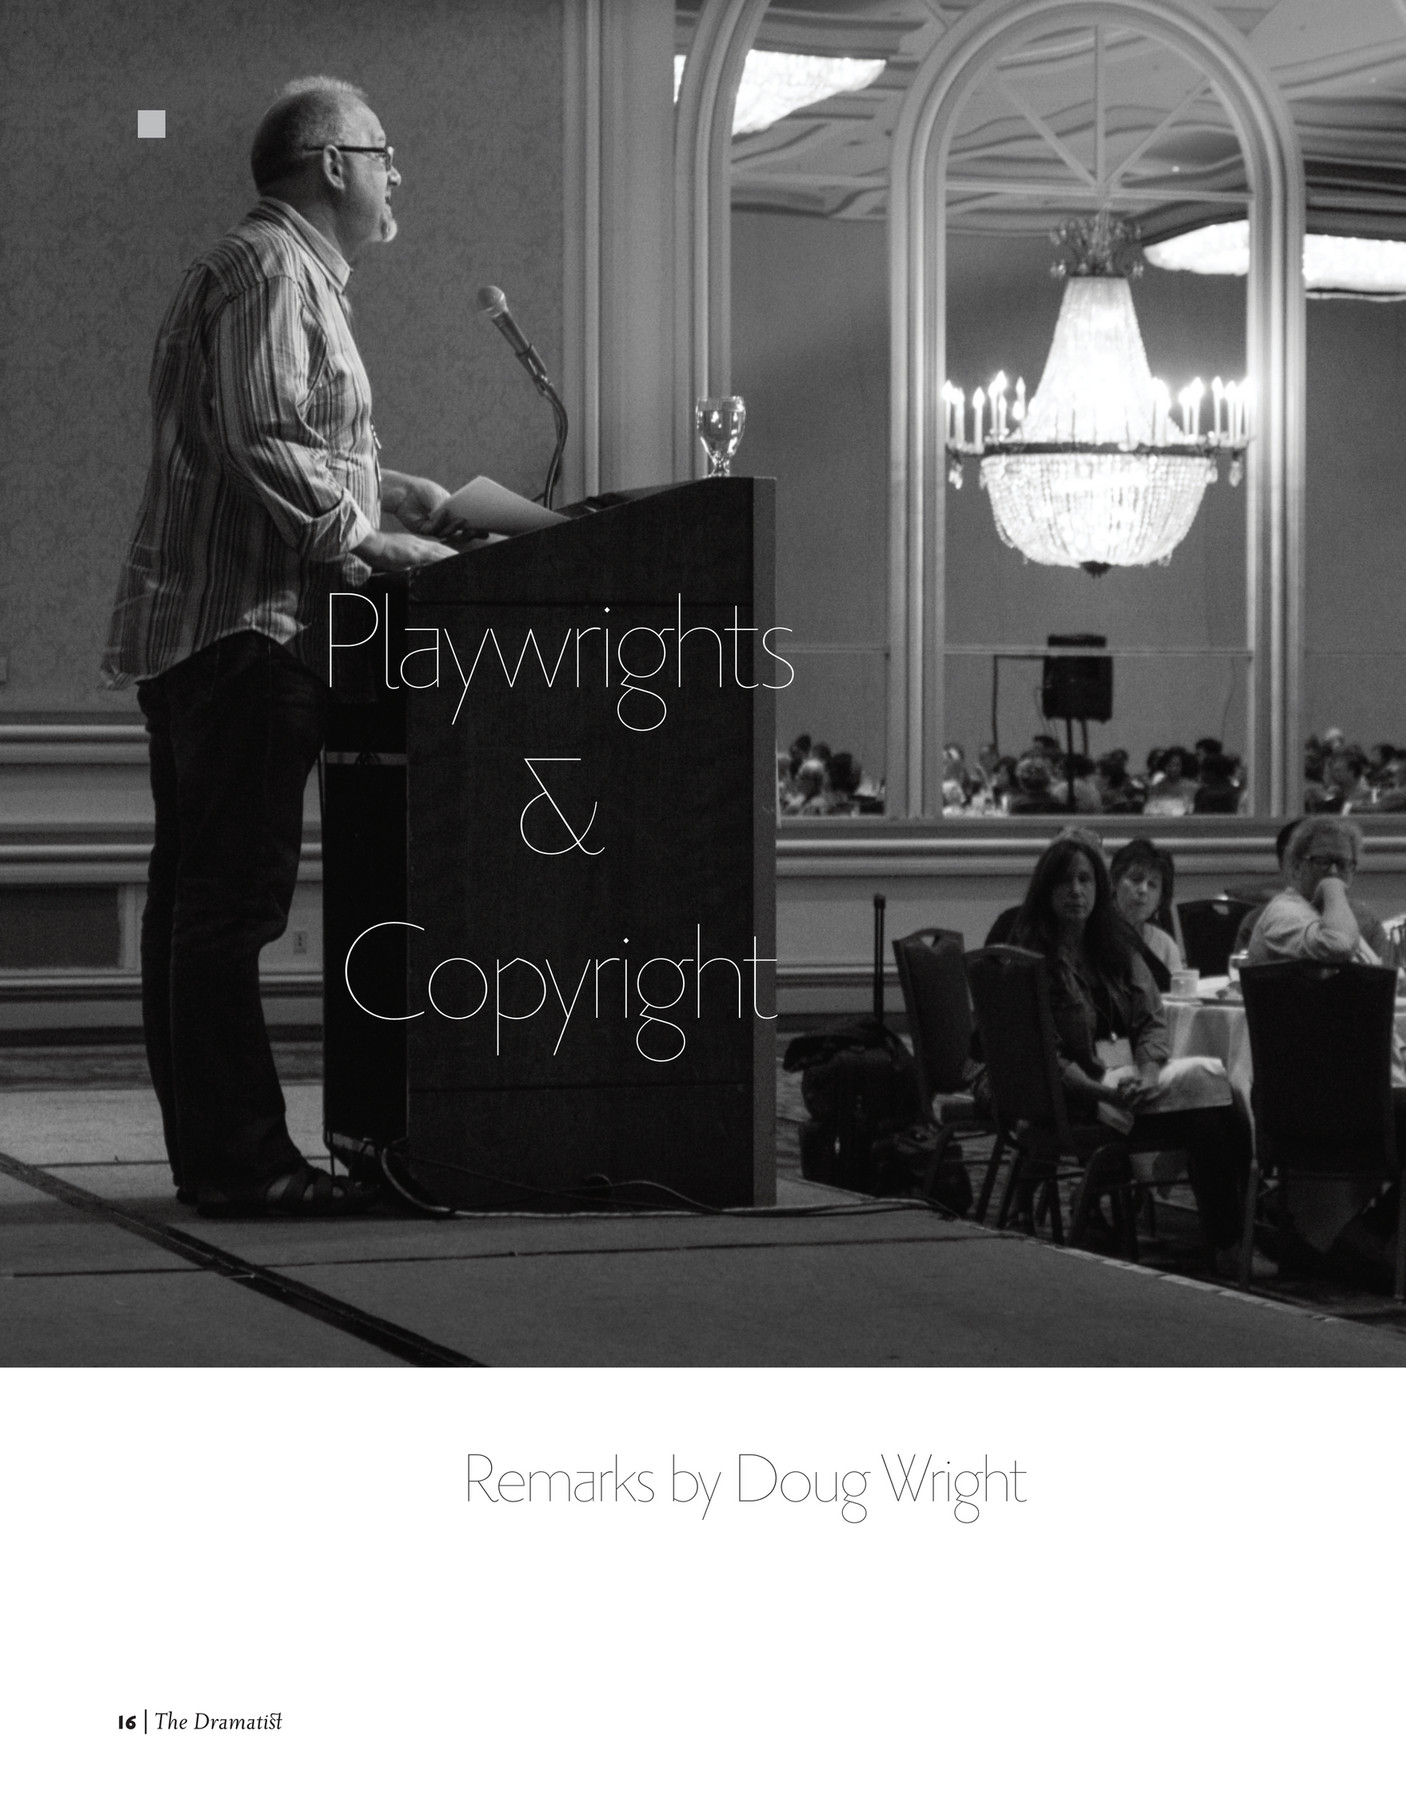 Playwrights and Copyright